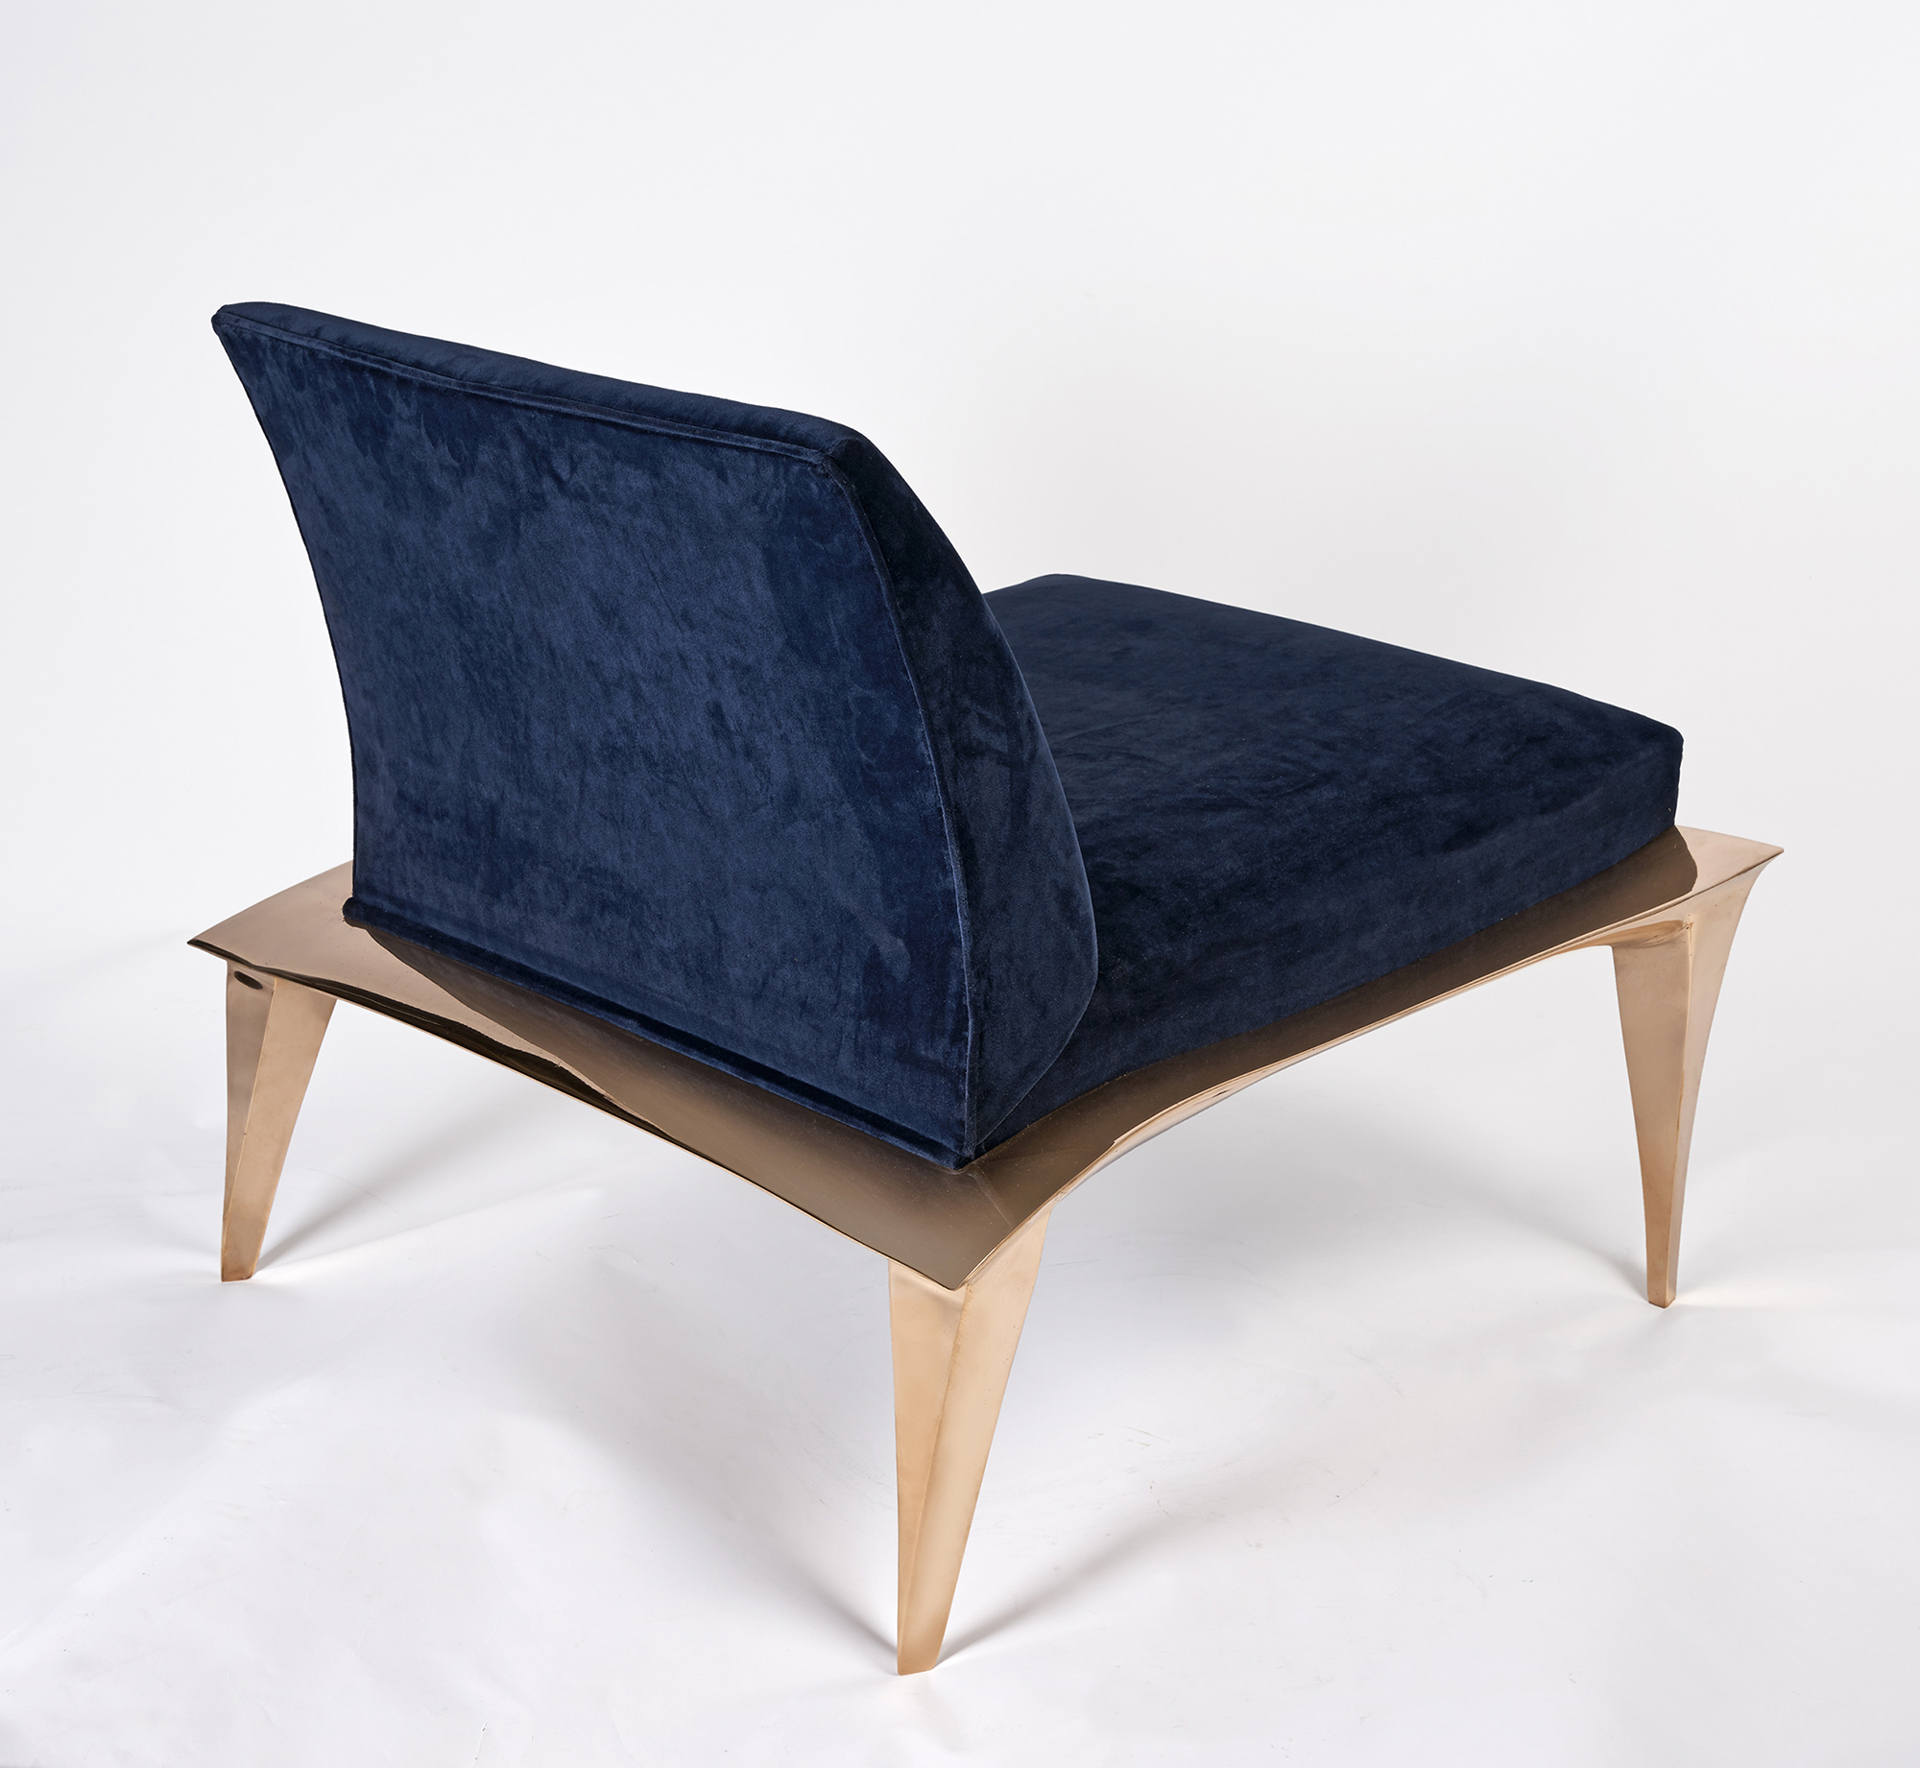 Bronze Armchair by Anasthasia Millot